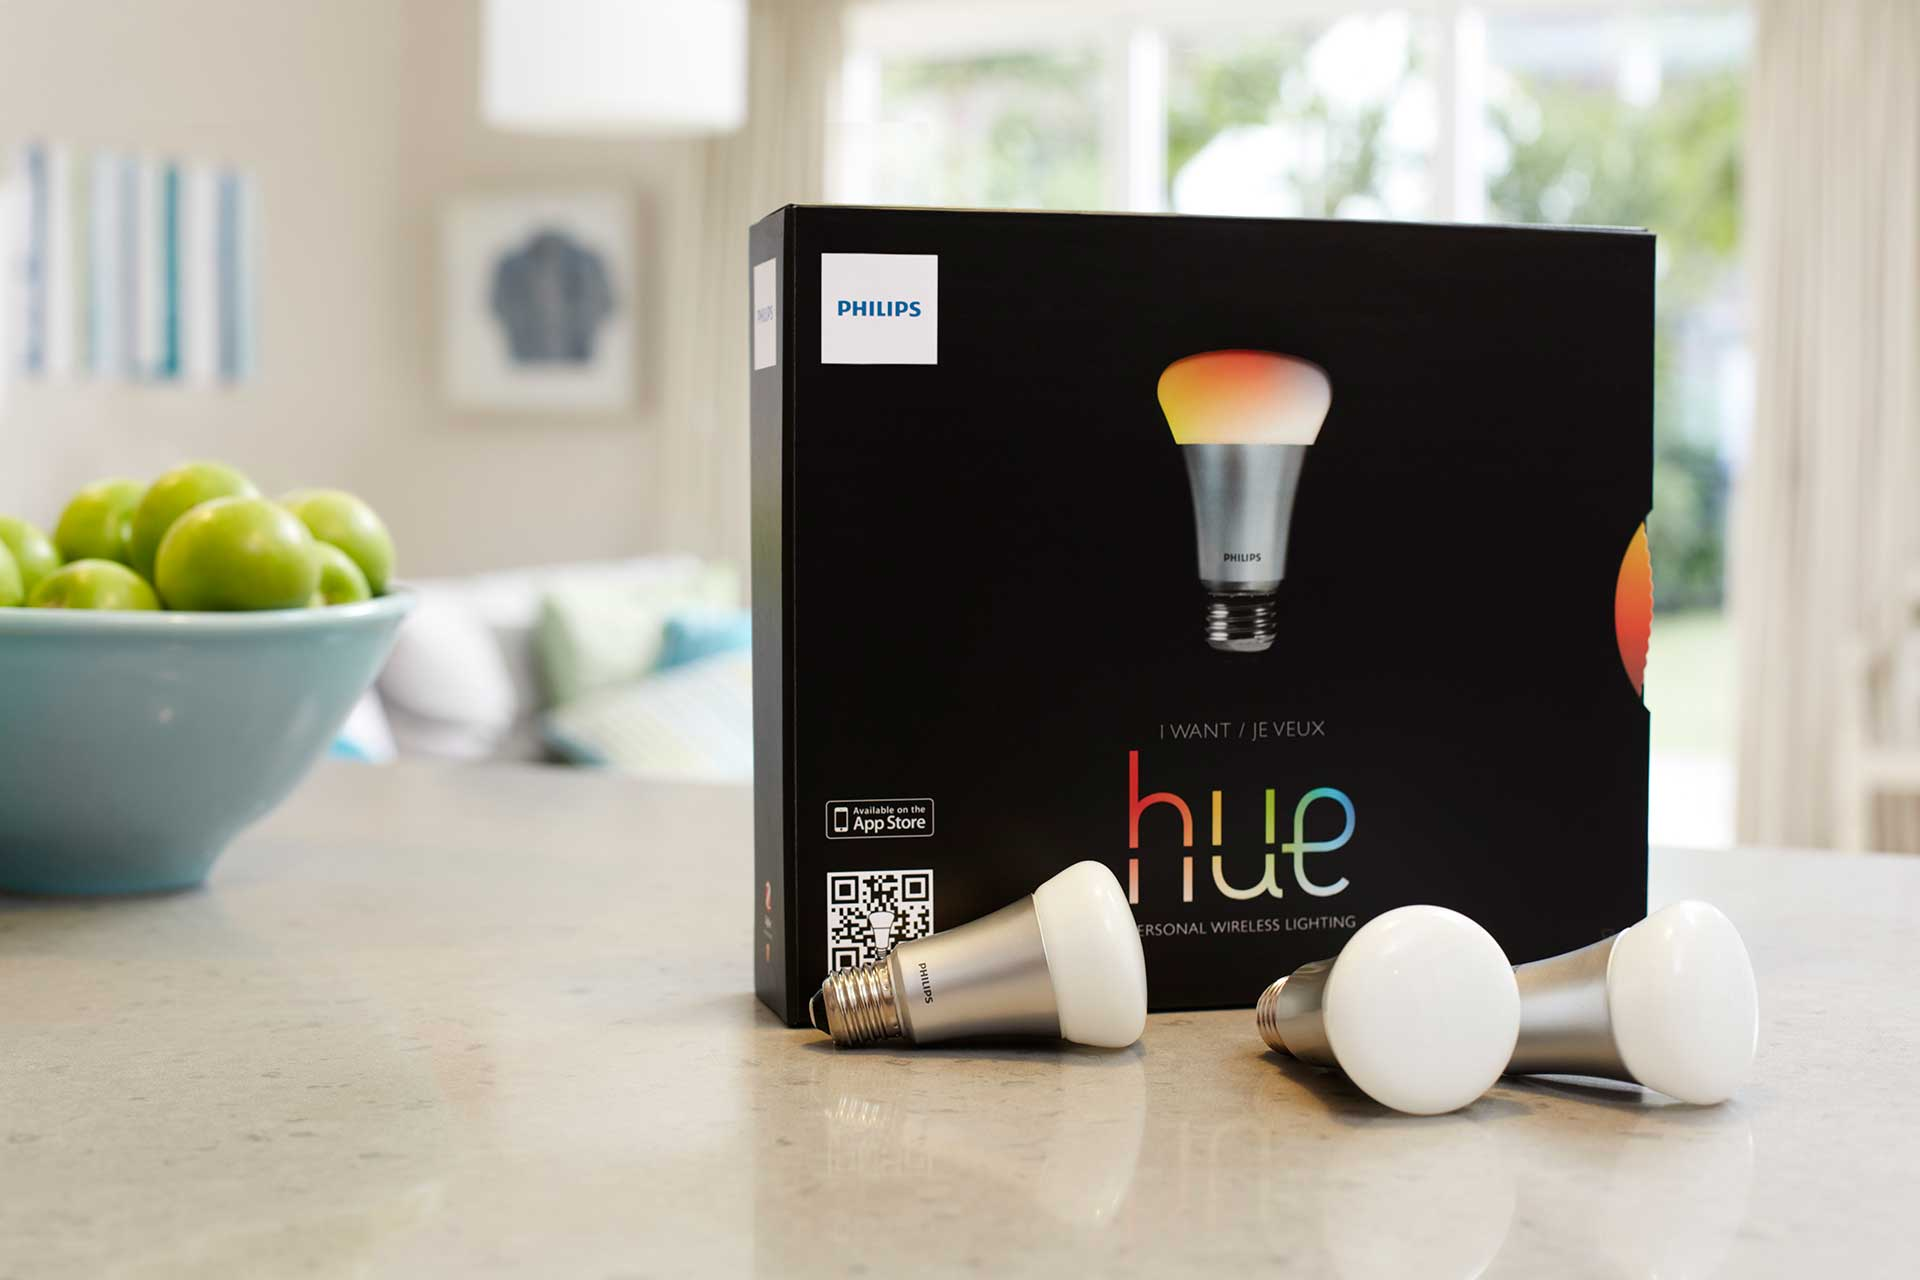 Philips Hue Wireless Lighting System: Controlling Light Temperature & Color From Smartphone